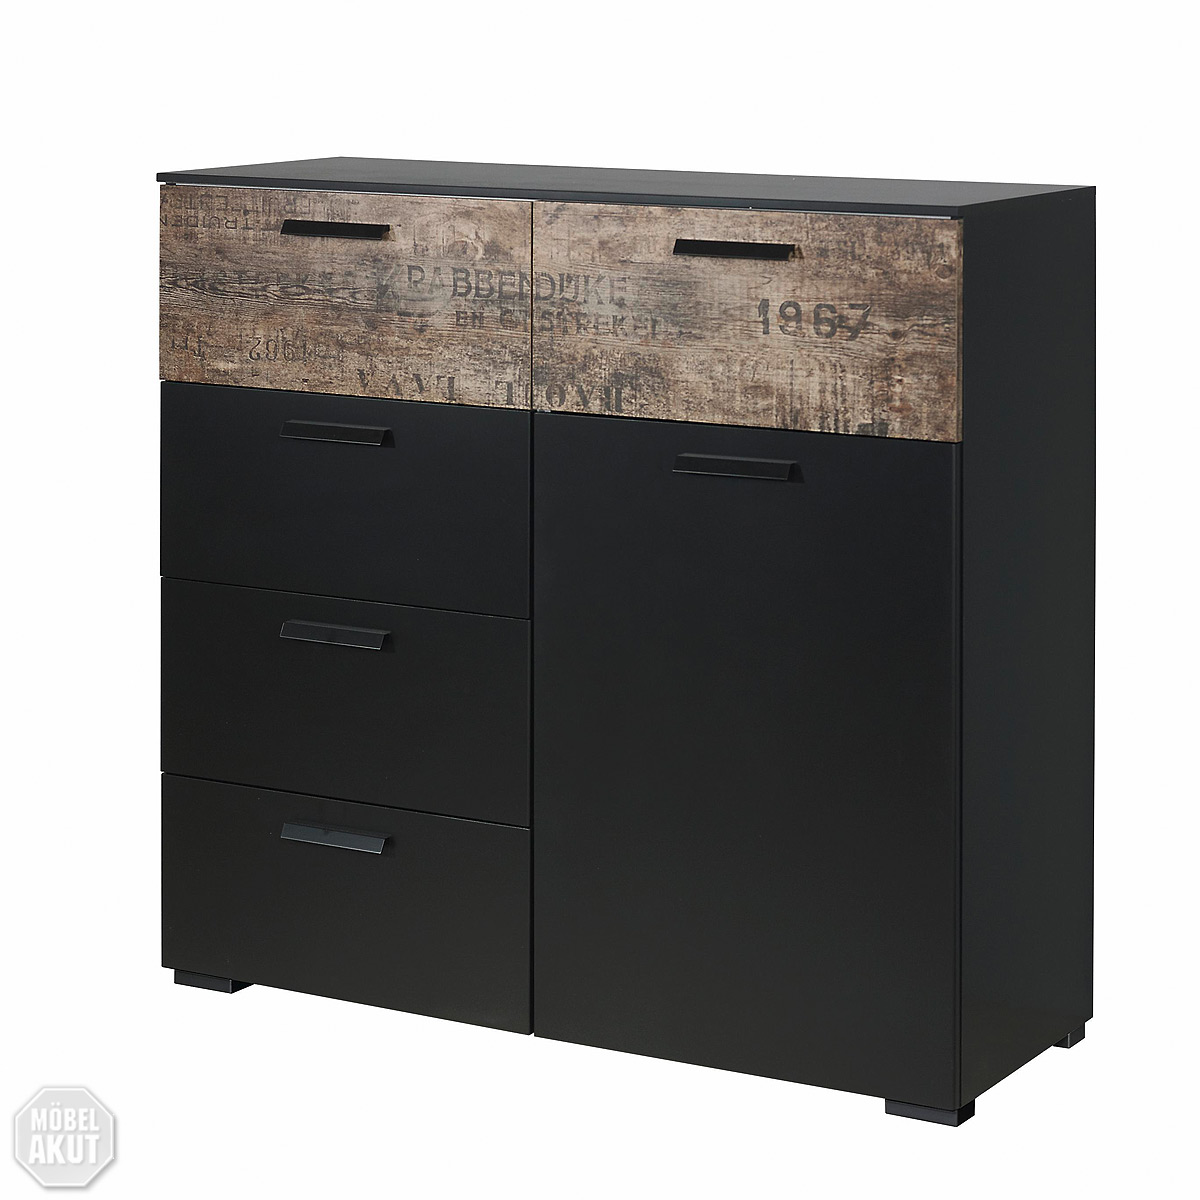 kommode sumatra sideboard kombikommode in schwarz braun vintage look neu ebay. Black Bedroom Furniture Sets. Home Design Ideas